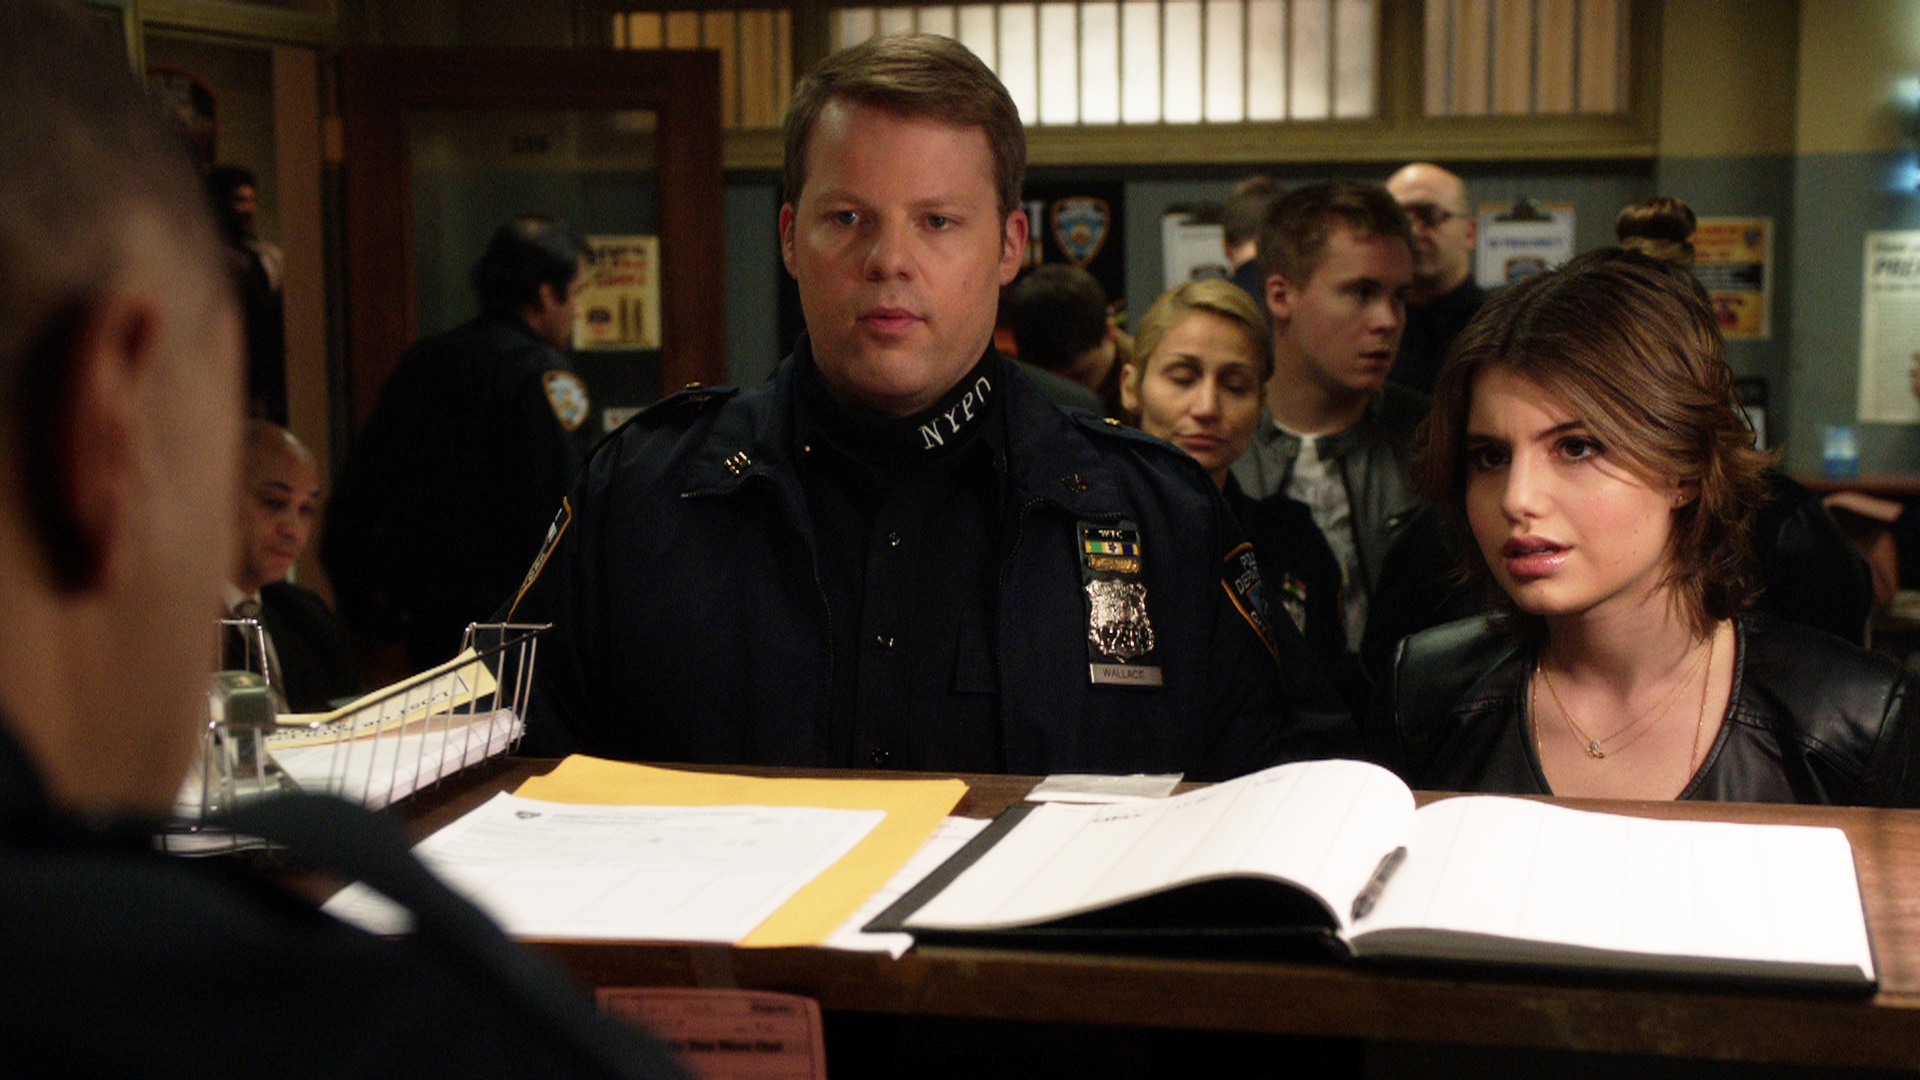 Sami Gayle as Nicky on Blue Bloods in a police station